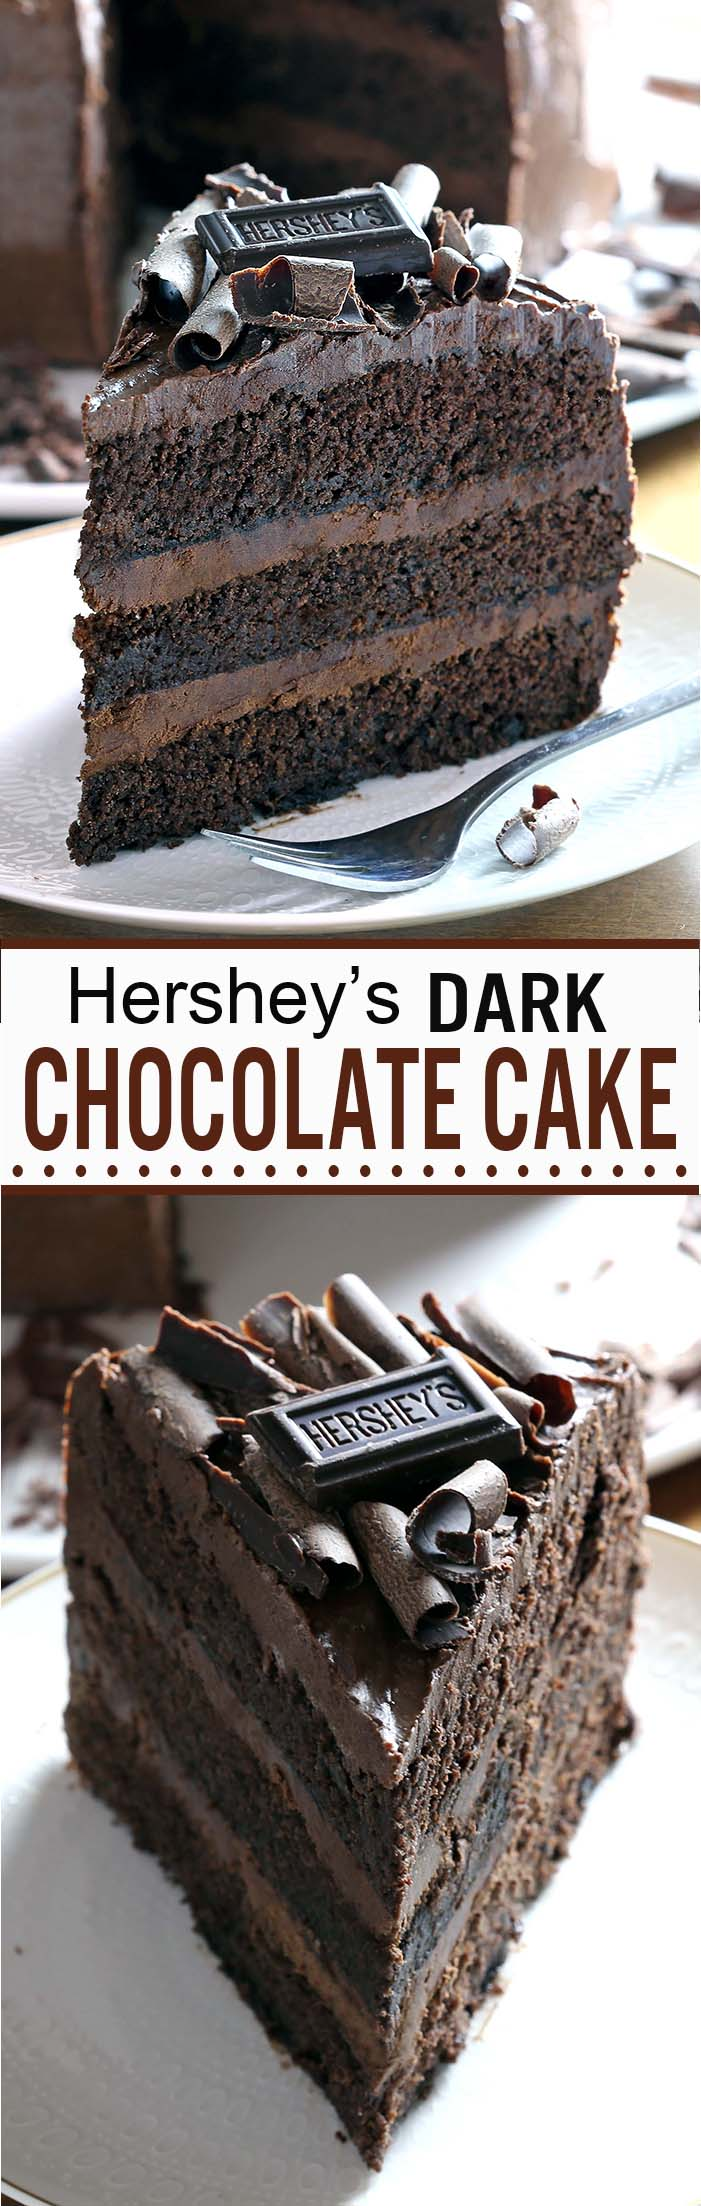 Dark Chocolate Cake | Cakescottage